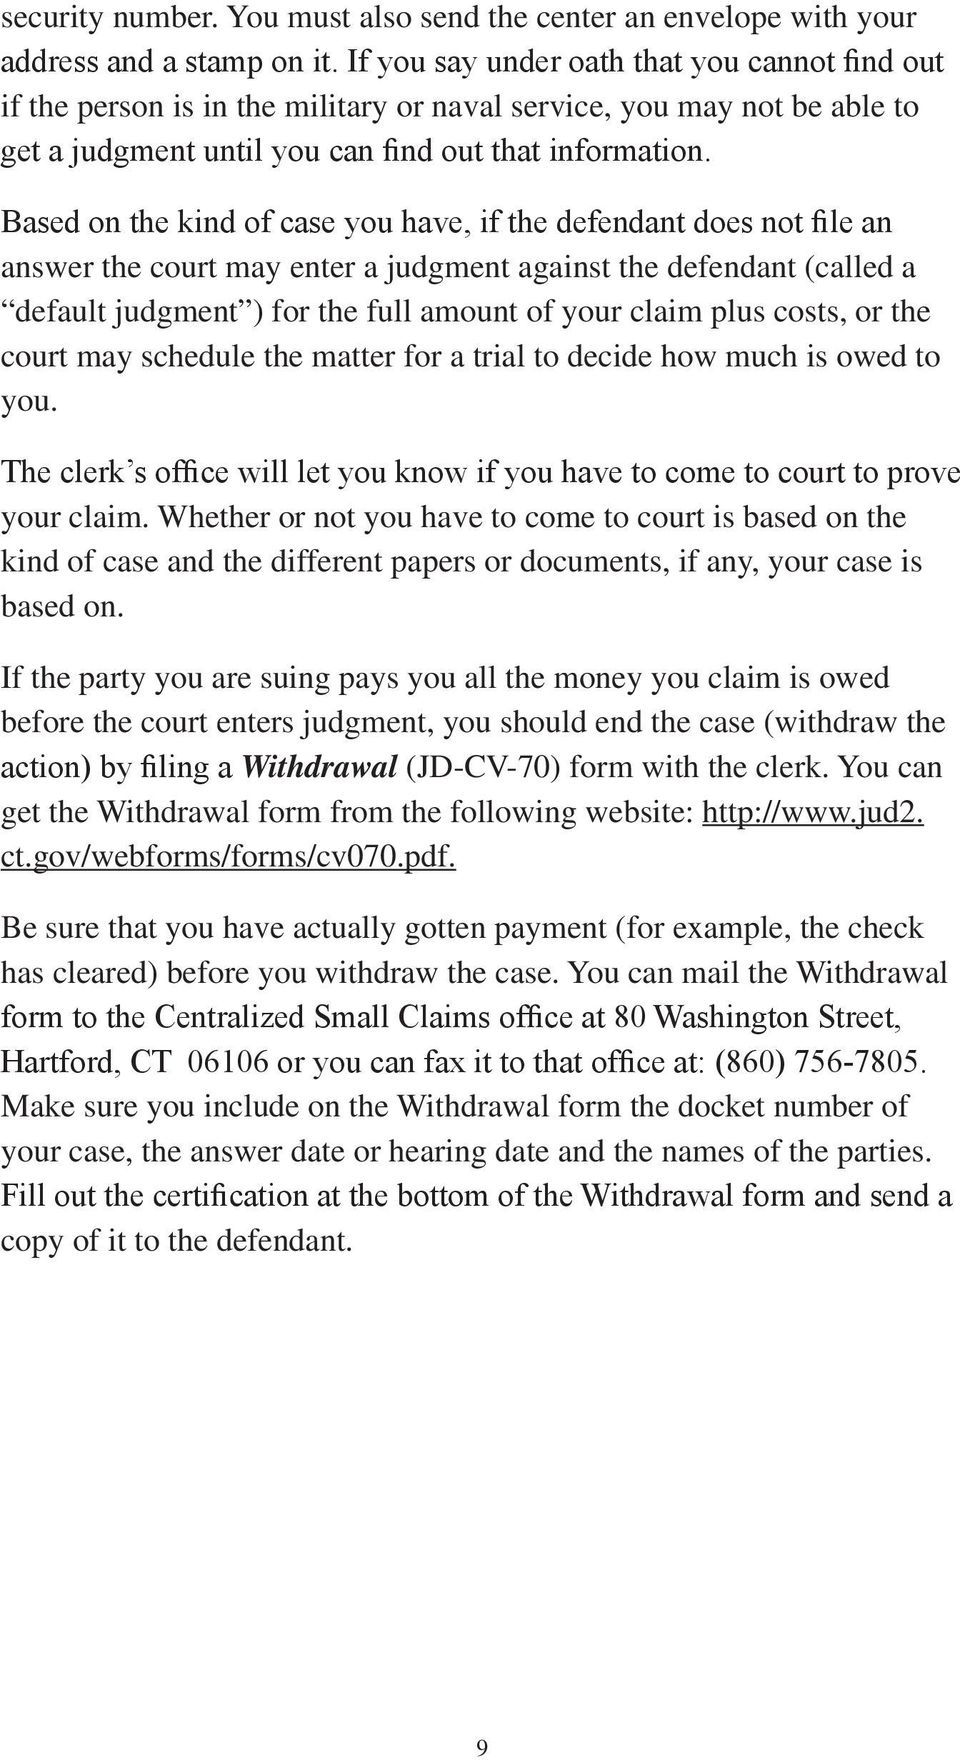 Based on the kind of case you have, if the defendant does not file an answer the court may enter a judgment against the defendant (called a default judgment ) for the full amount of your claim plus